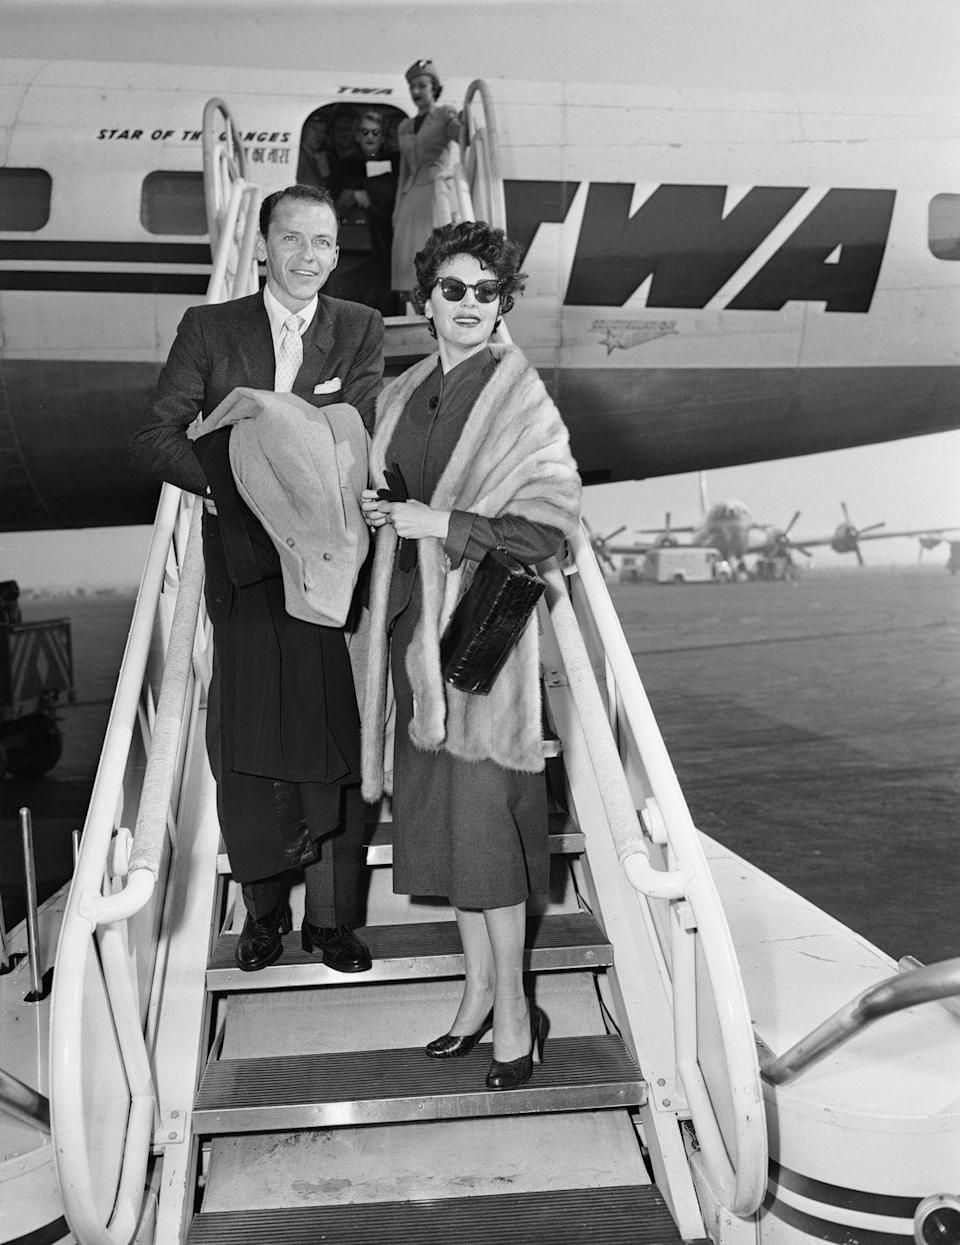 <p>Legendary singer Frank Sinatra and Academy Award nominee Ava Gardner (<em>Mogambo</em>, <em>Show Boat</em>) board an airplane. The couple shared a tumultuous and <em>very</em> public marriage that lasted from 1951 to 1957. </p>